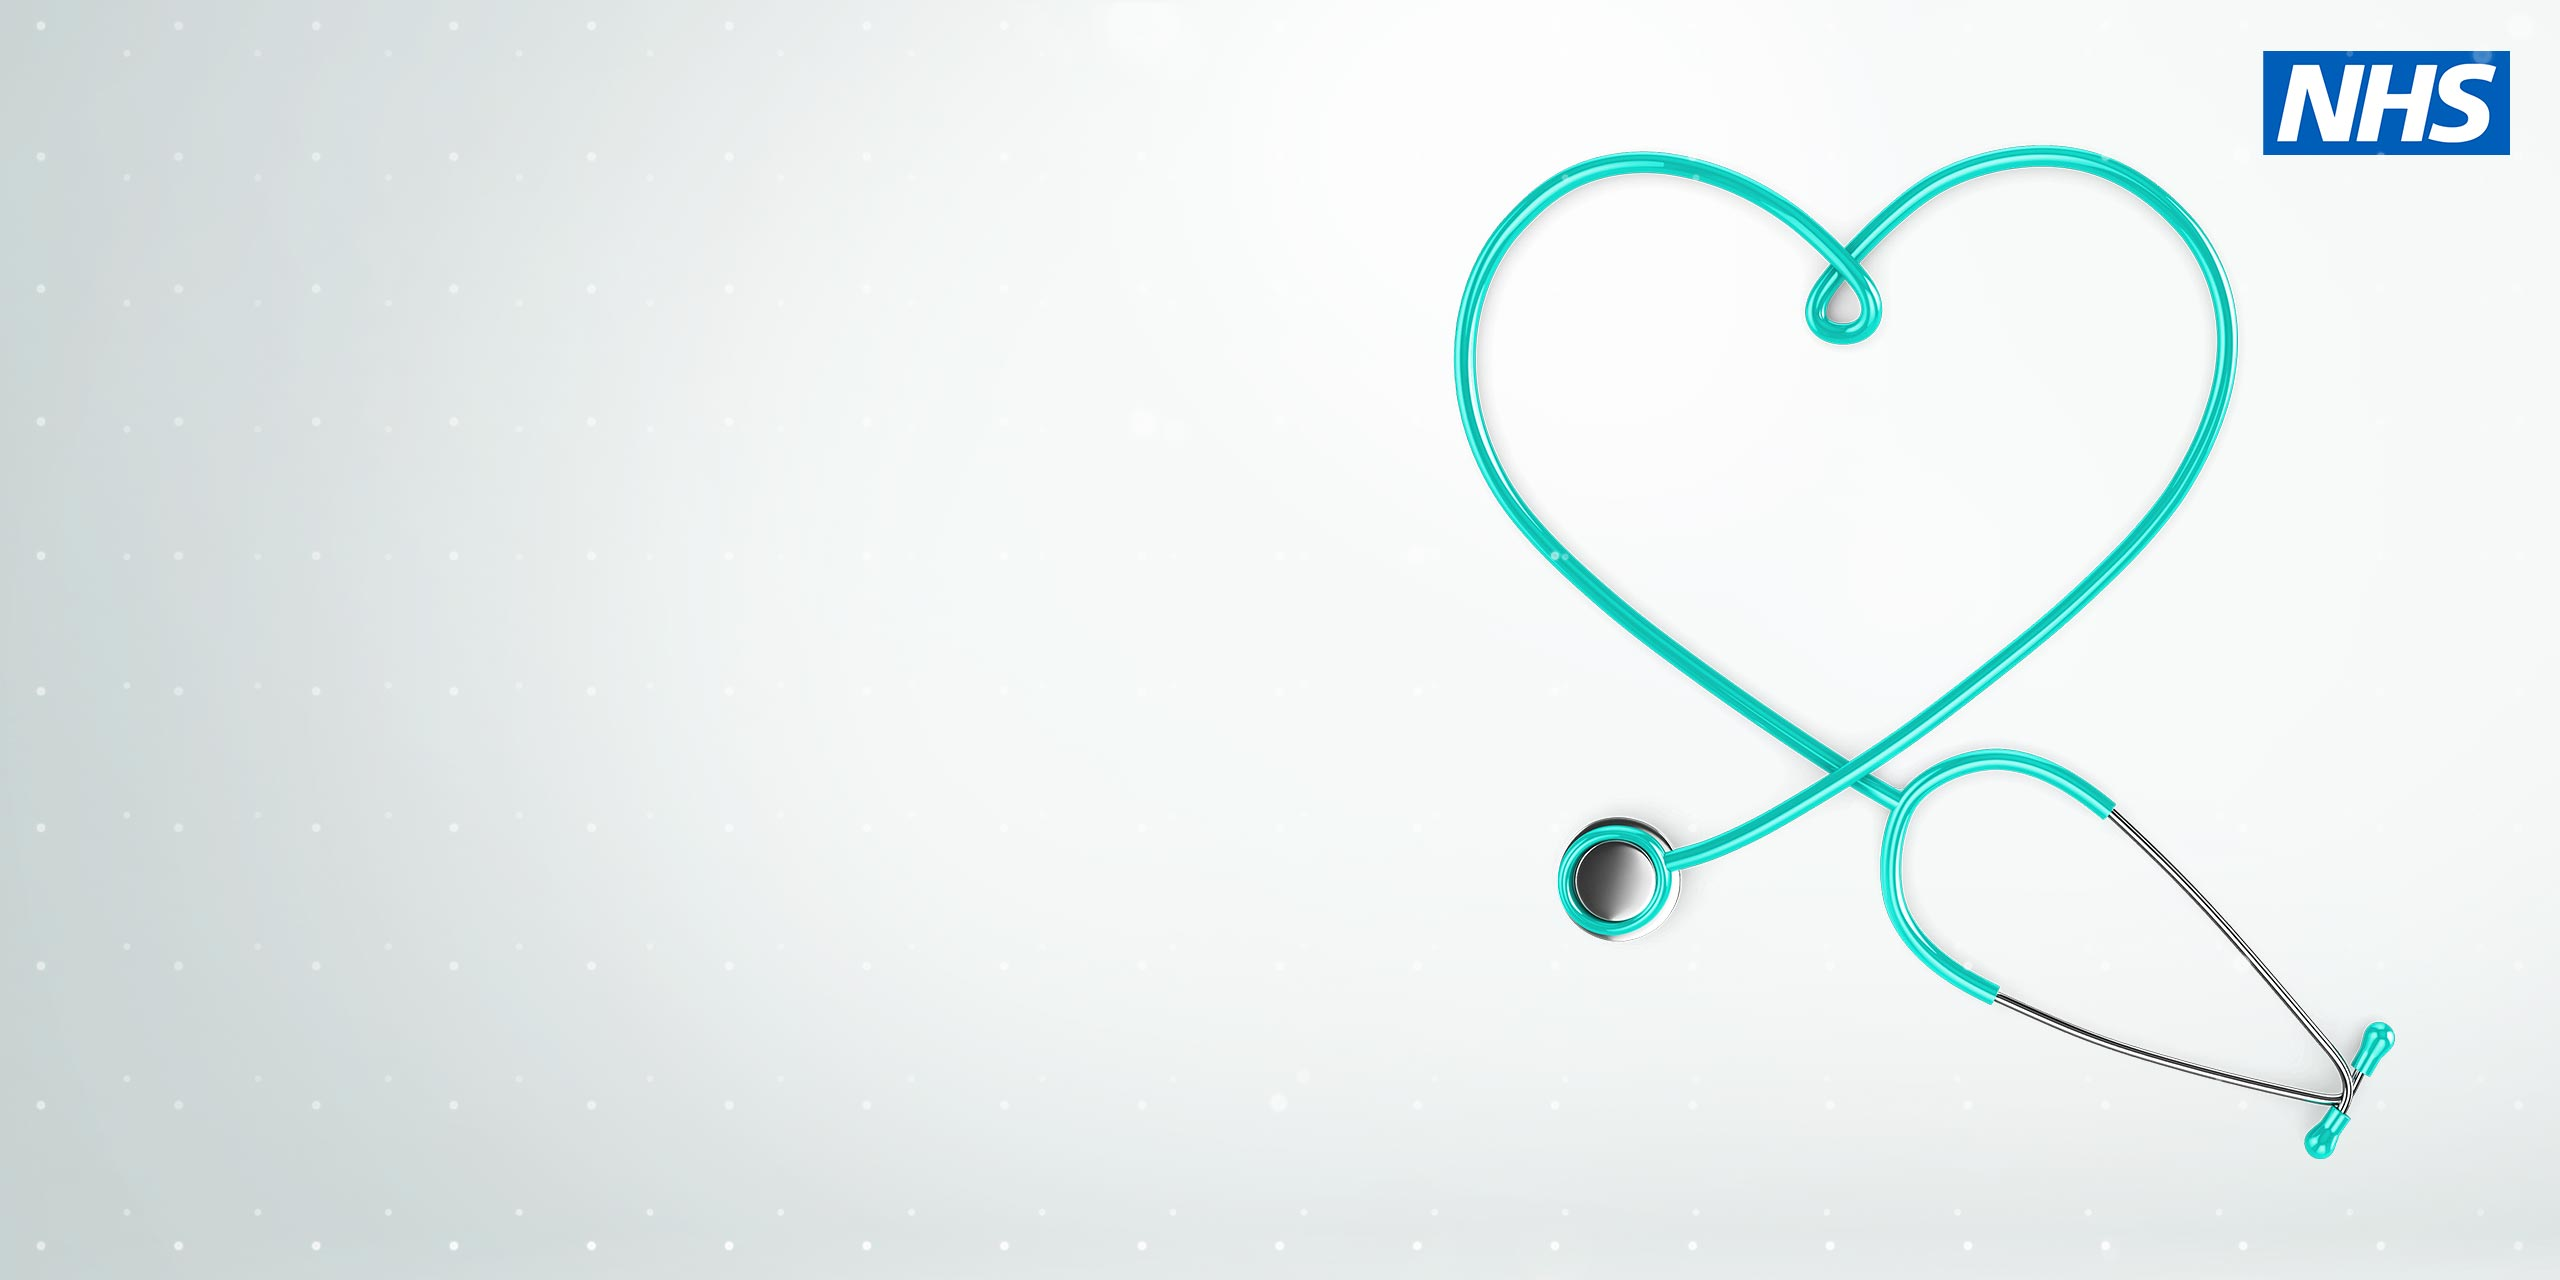 Stethoscope in heart shape with NHS logo